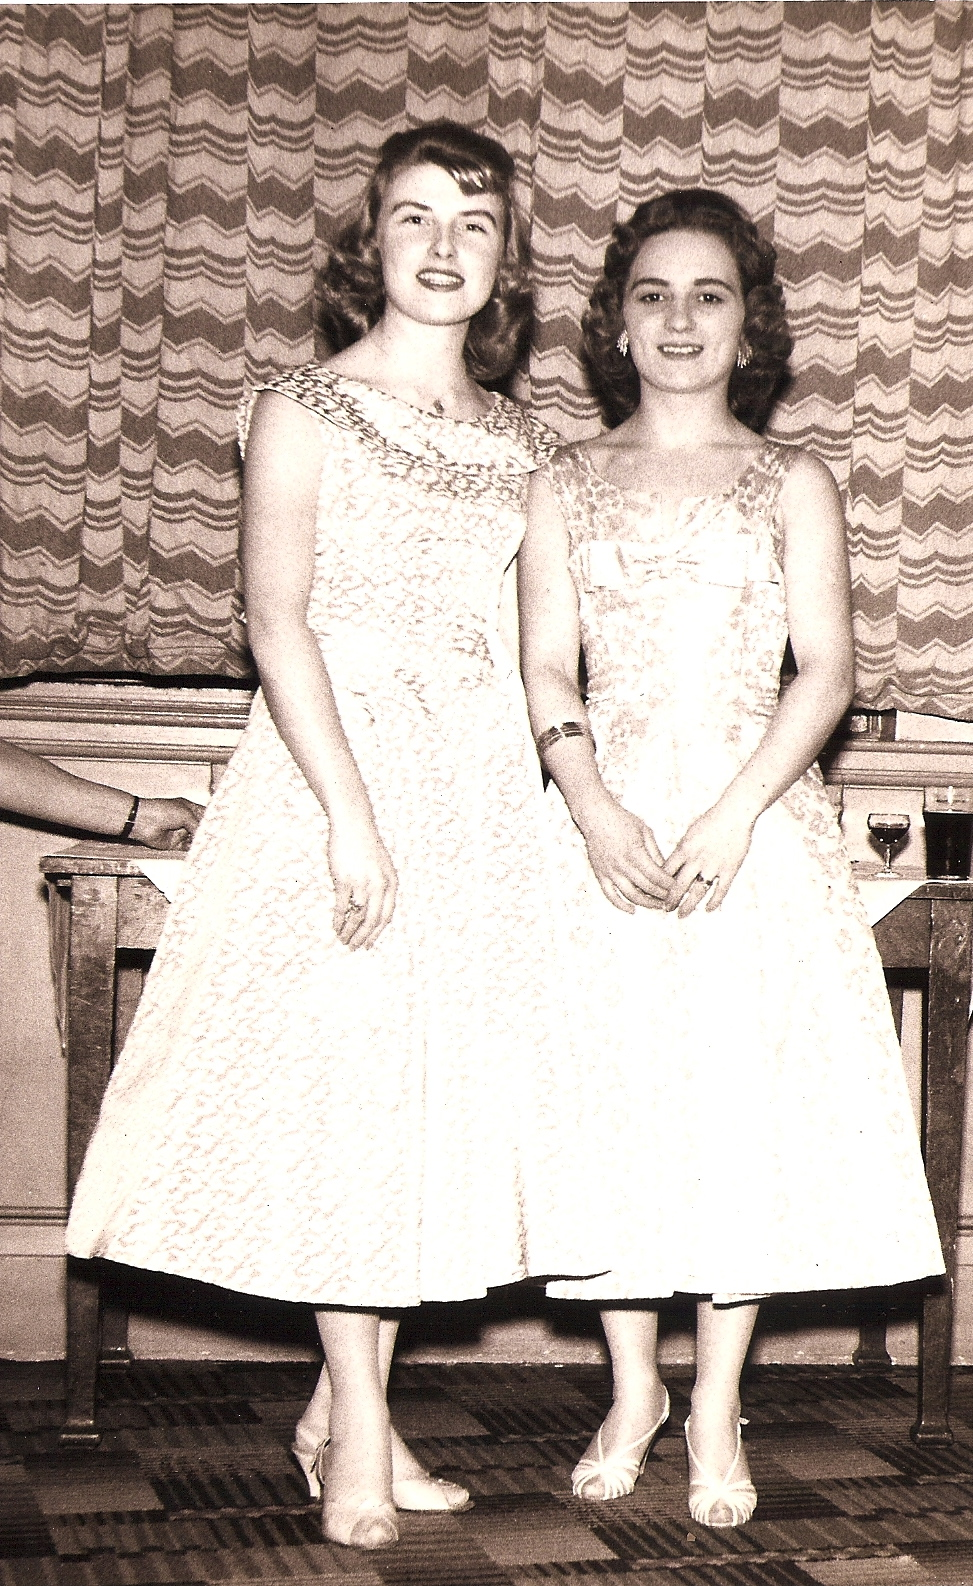 My Mum (left) and her friend, later my Aunt Sylvia in dresses made by my Nan. My Mum was a court dressmaker for John Cavanagh, she never stops teaching me.